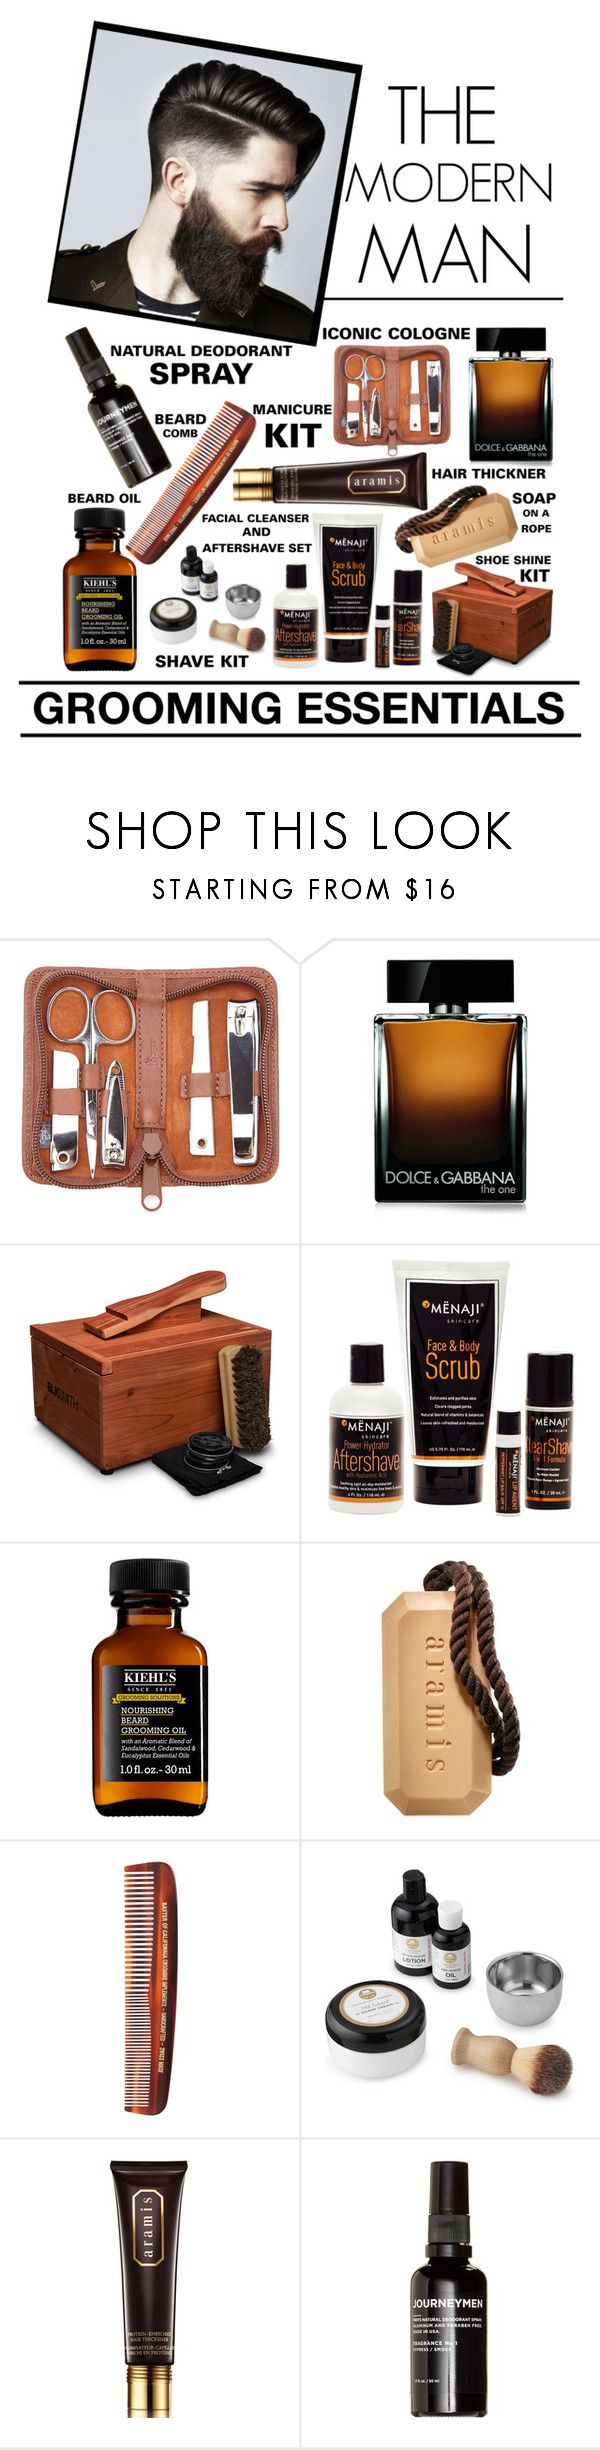 The Modern Man - Grooming Essentials by latoyacl on Polyvore featuring beauty, Dolce&Gabbana, Blksmith, MÃ«naji, Royce Leather, Kiehl's, Aramis, Journeymen, Baxter of California and Barba